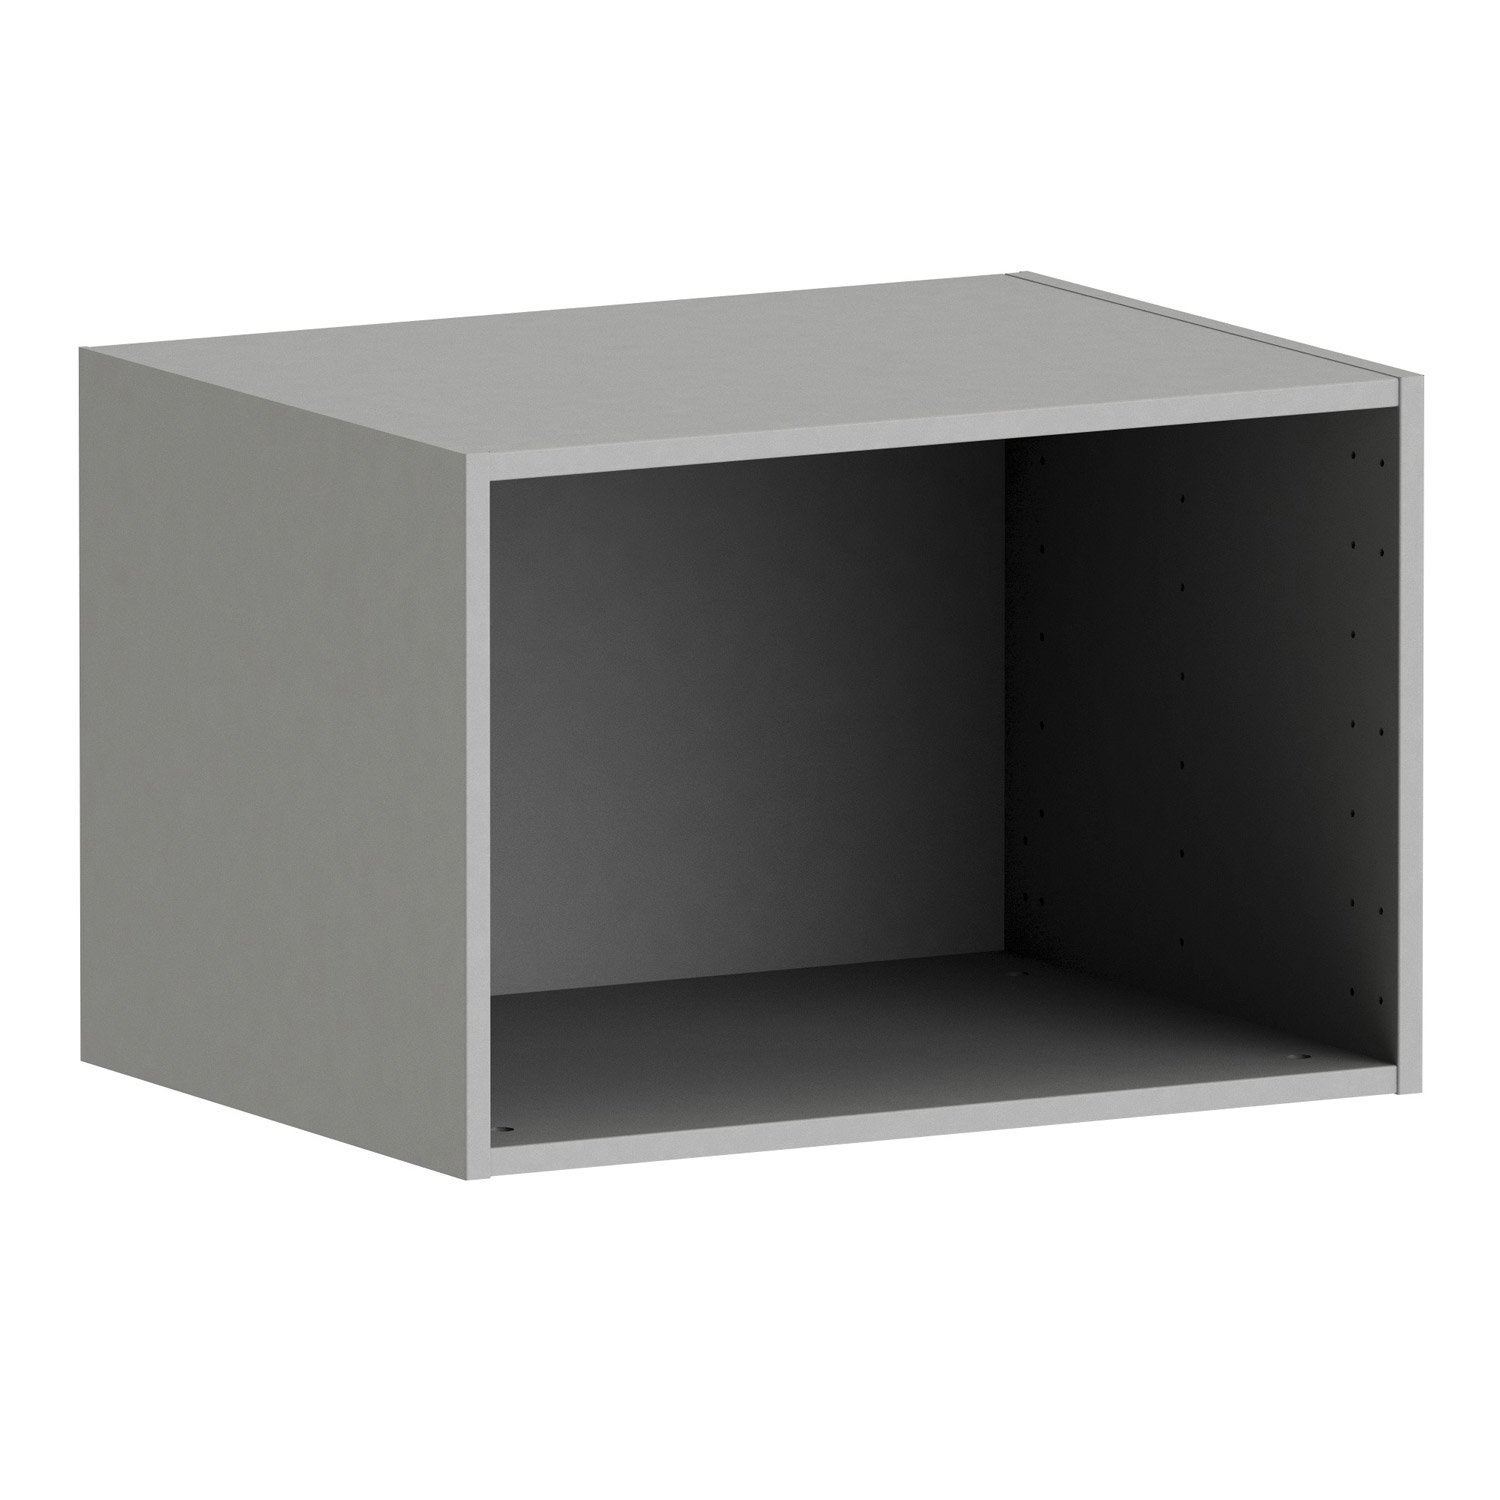 caisson spaceo home 40 x 60 x 45 cm anthracite leroy merlin. Black Bedroom Furniture Sets. Home Design Ideas